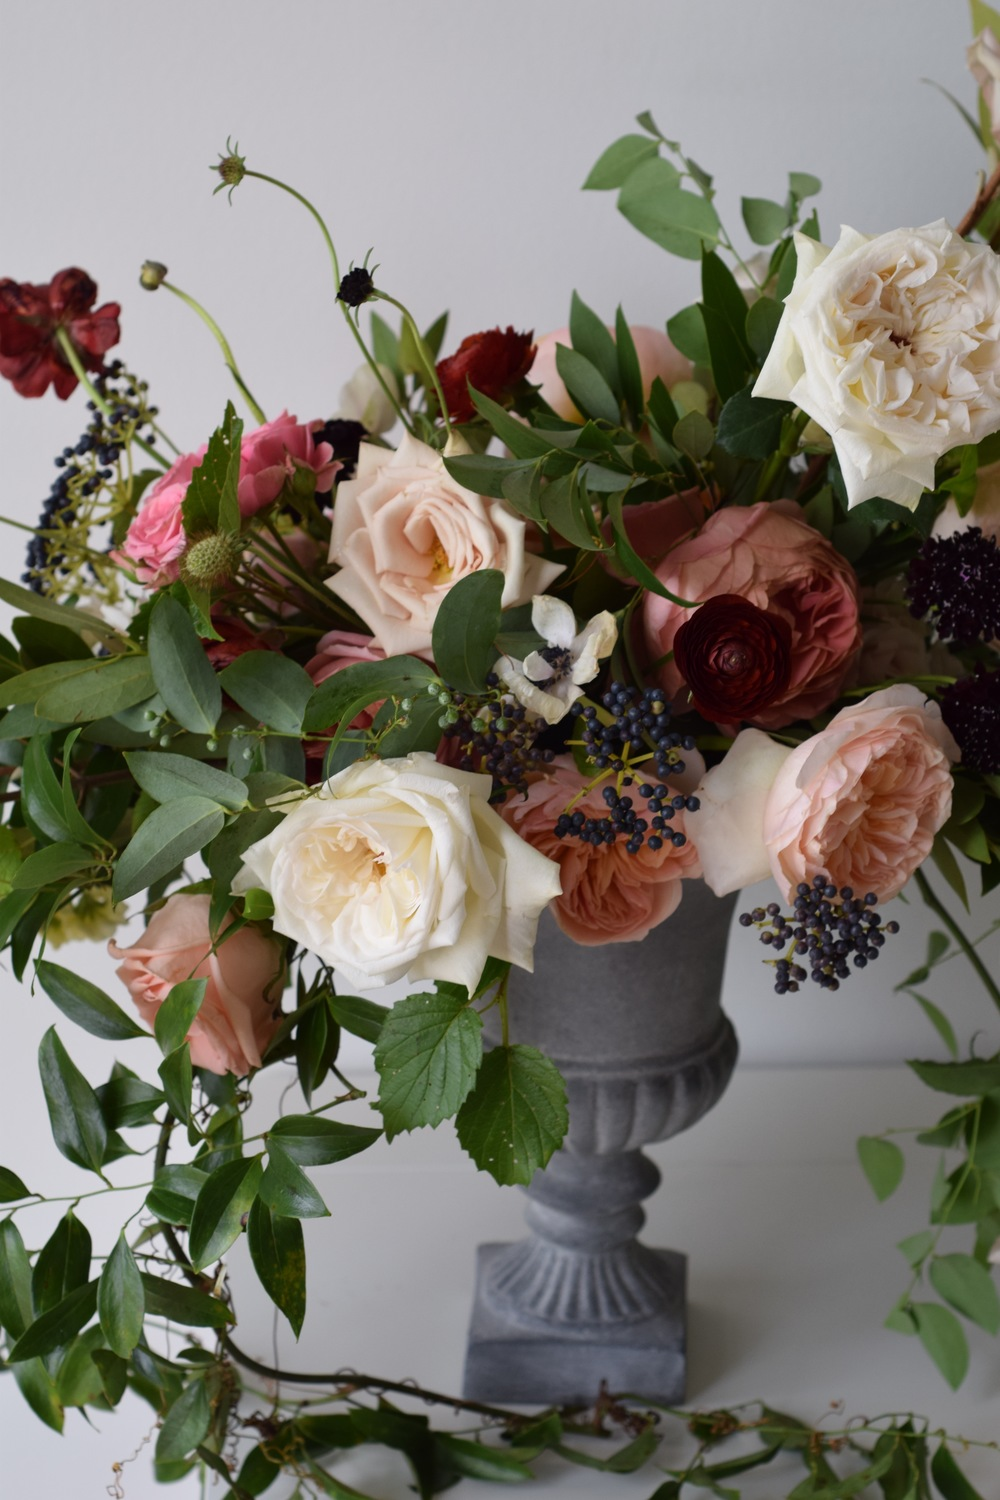 Compote arrangement featuring roses and berries. Maxit Flower Design in Houston Texas